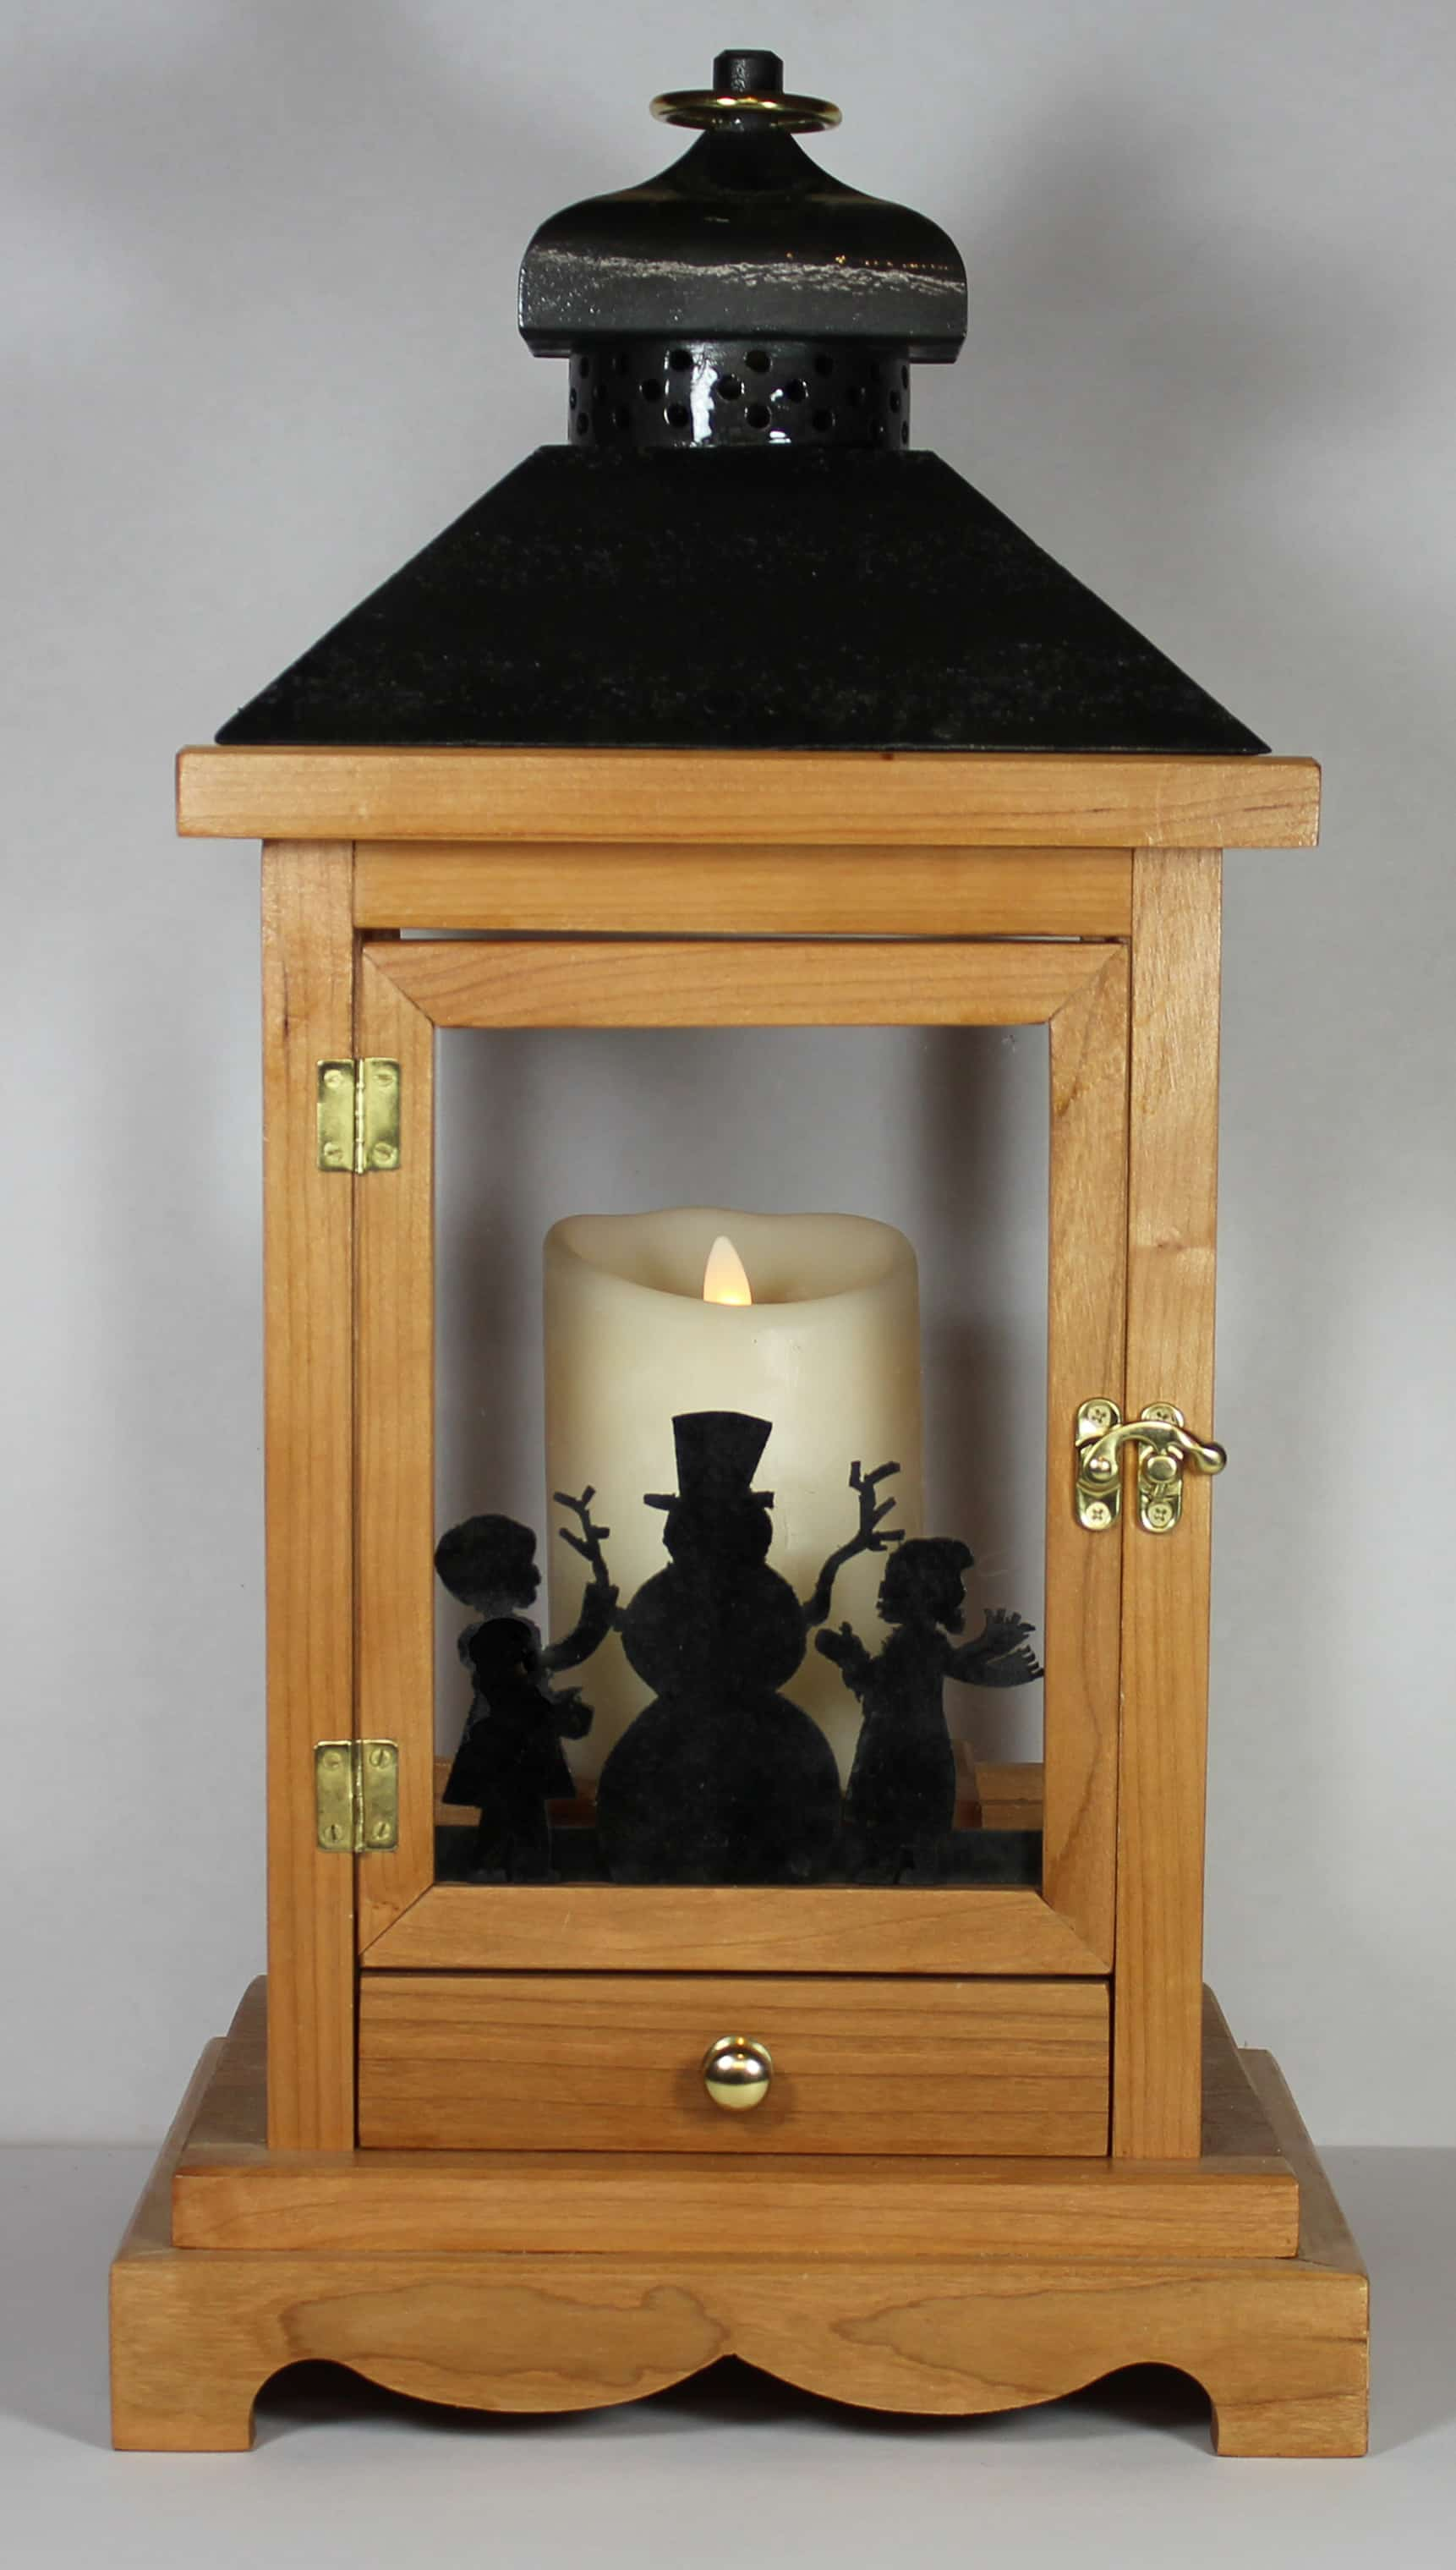 A Woodworking Plan For Building A Wood Lantern For